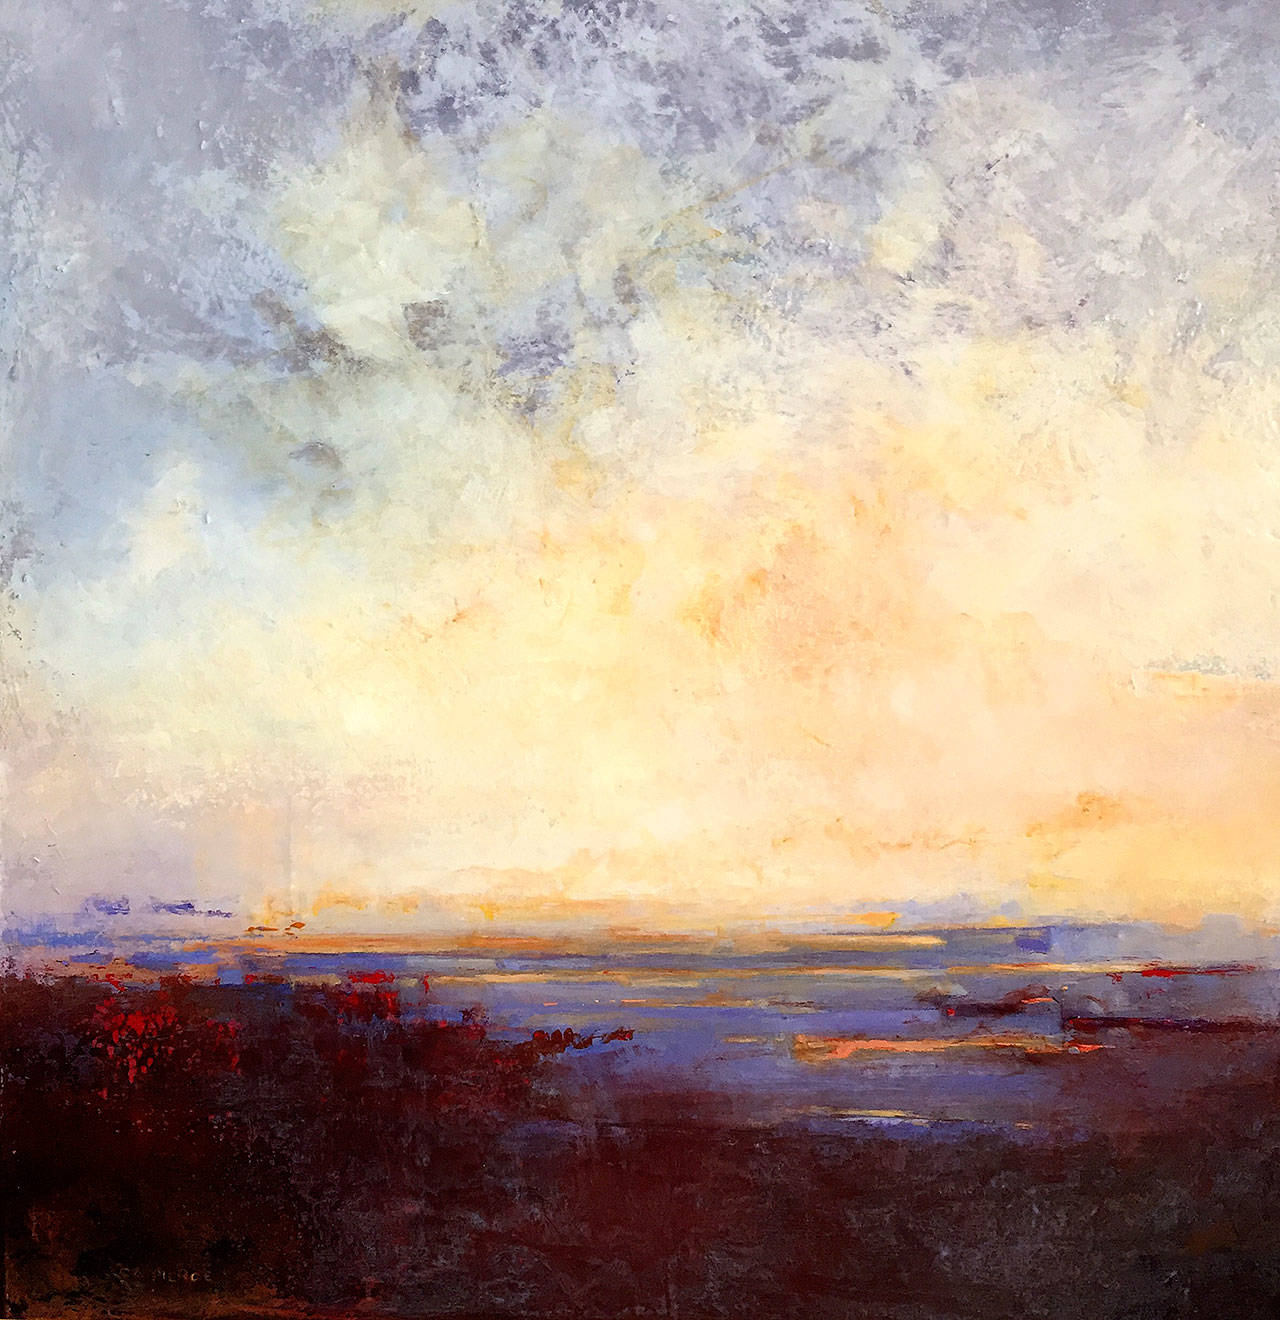 """""""Red Sky in the Morning"""" was inspired by views from artist C.A. Pierce's home overlooking Lake Washington."""